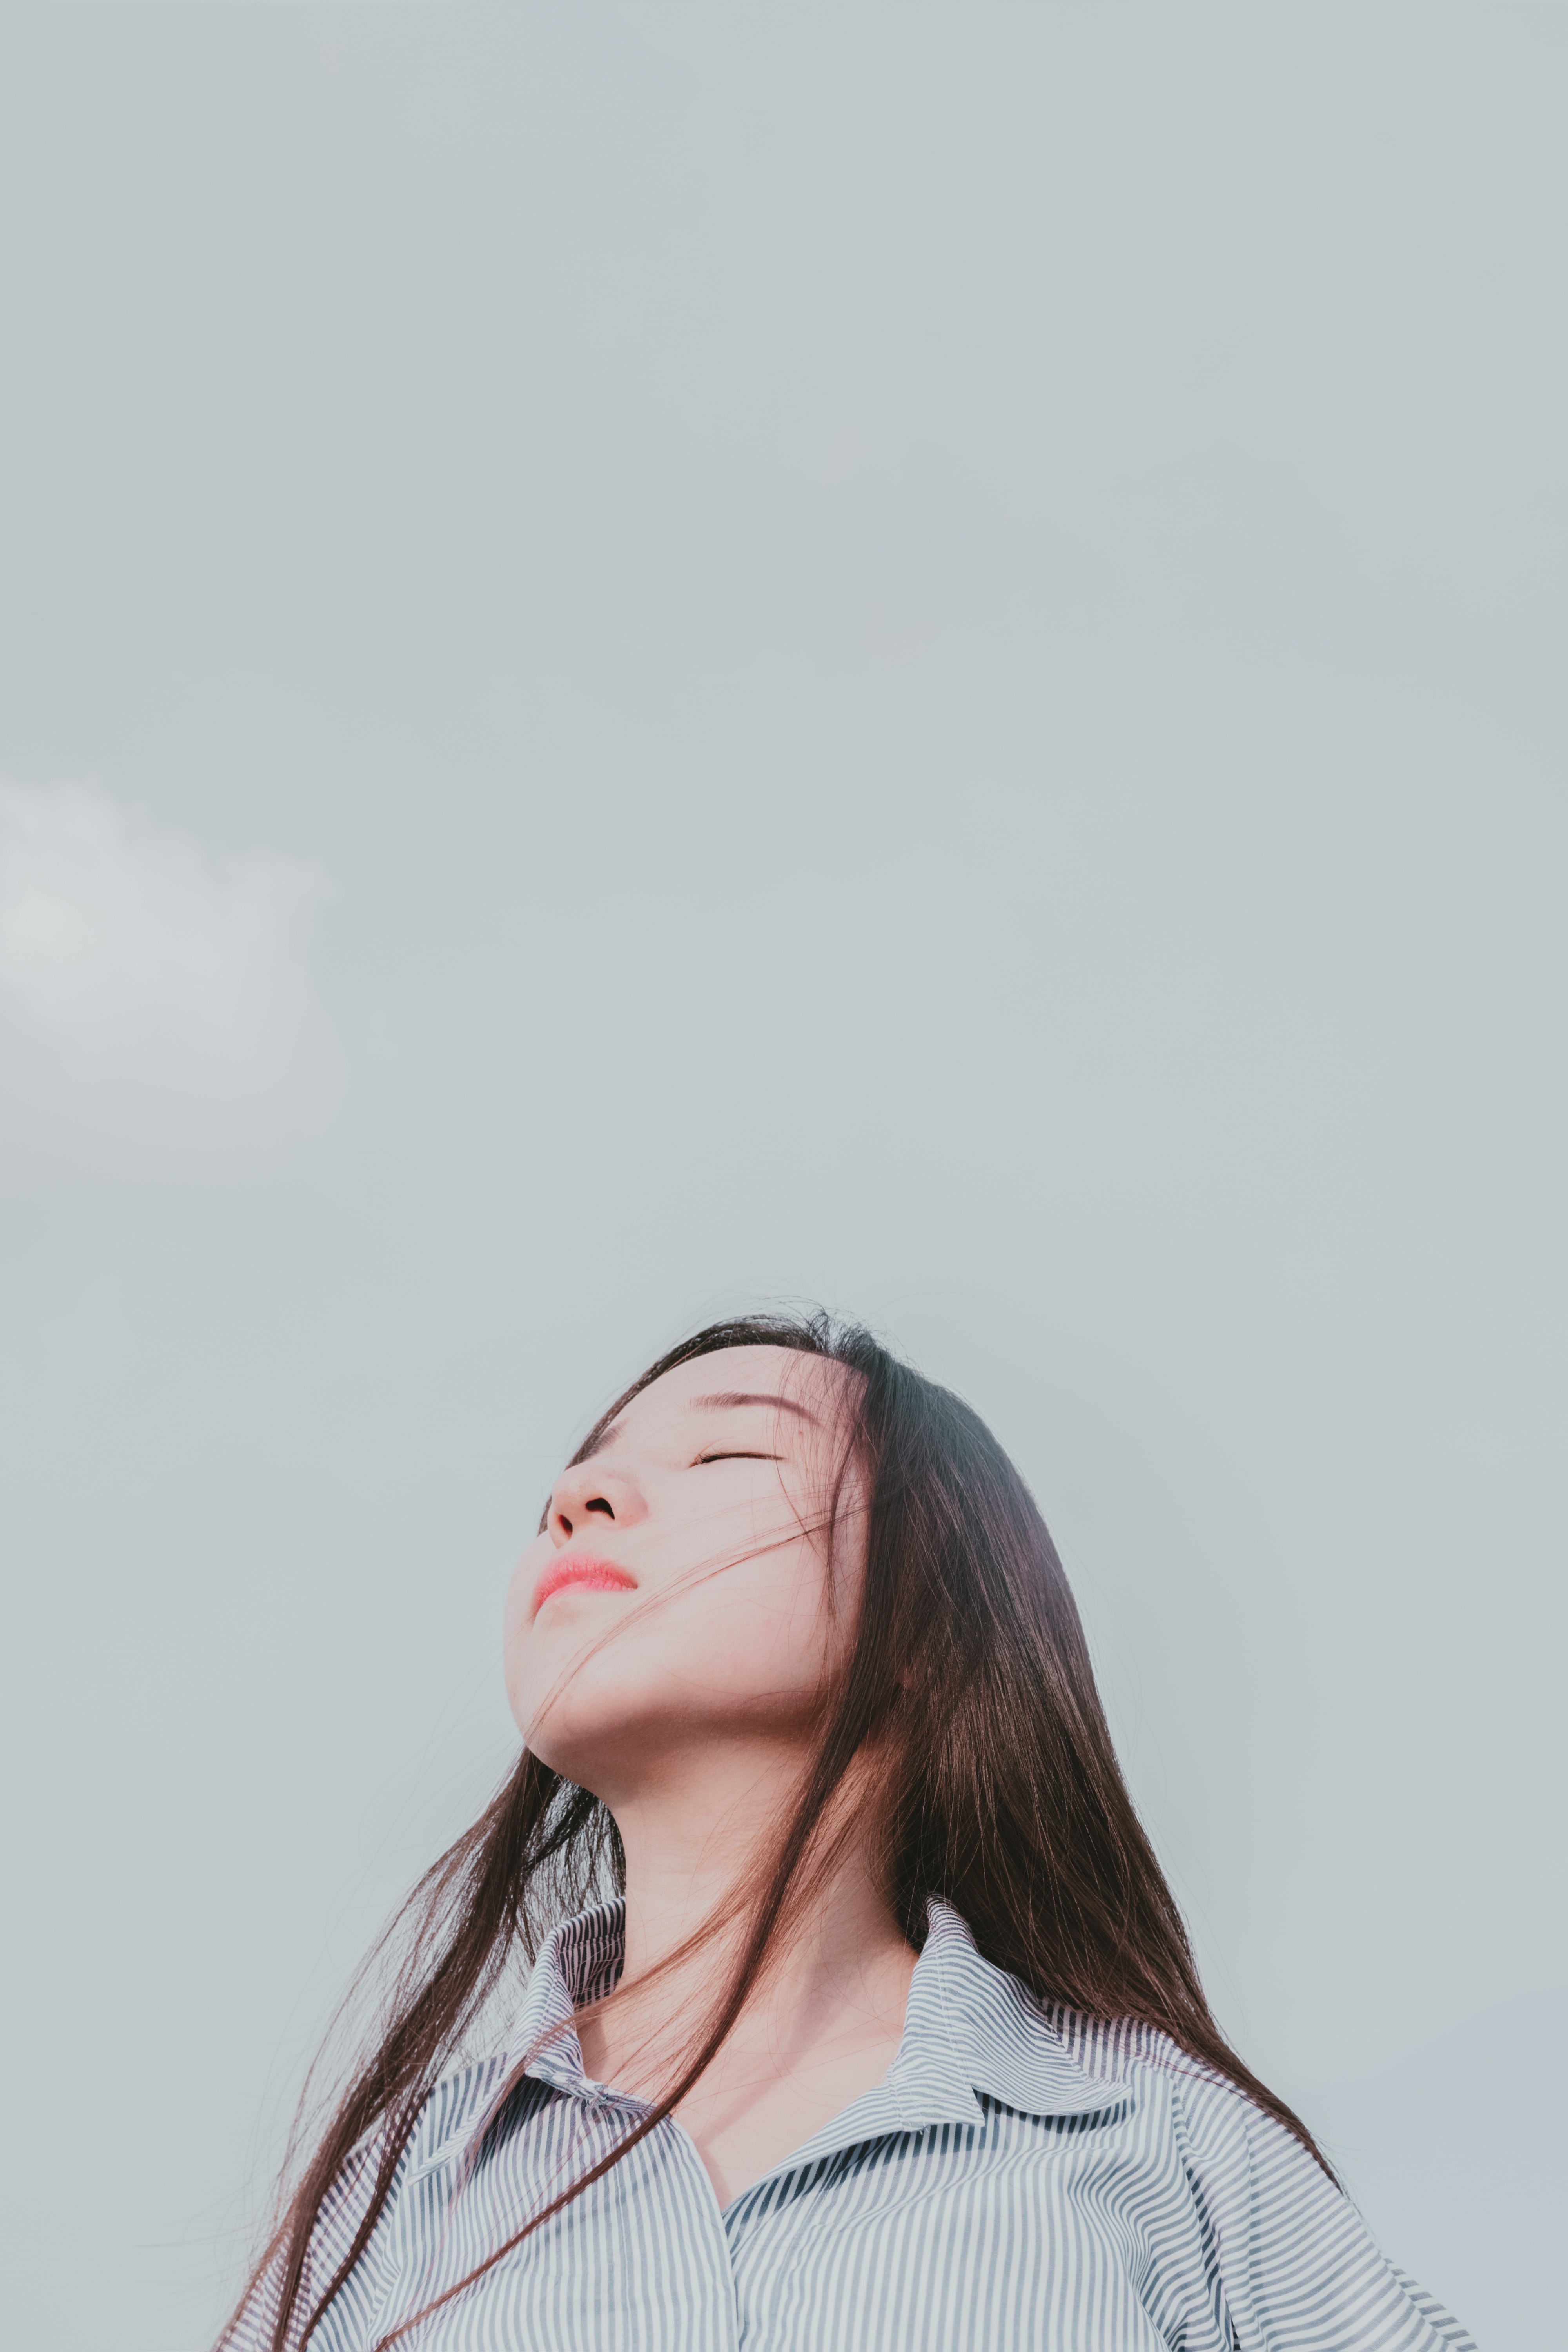 A woman closes her eyes and throws back her head toward the sky